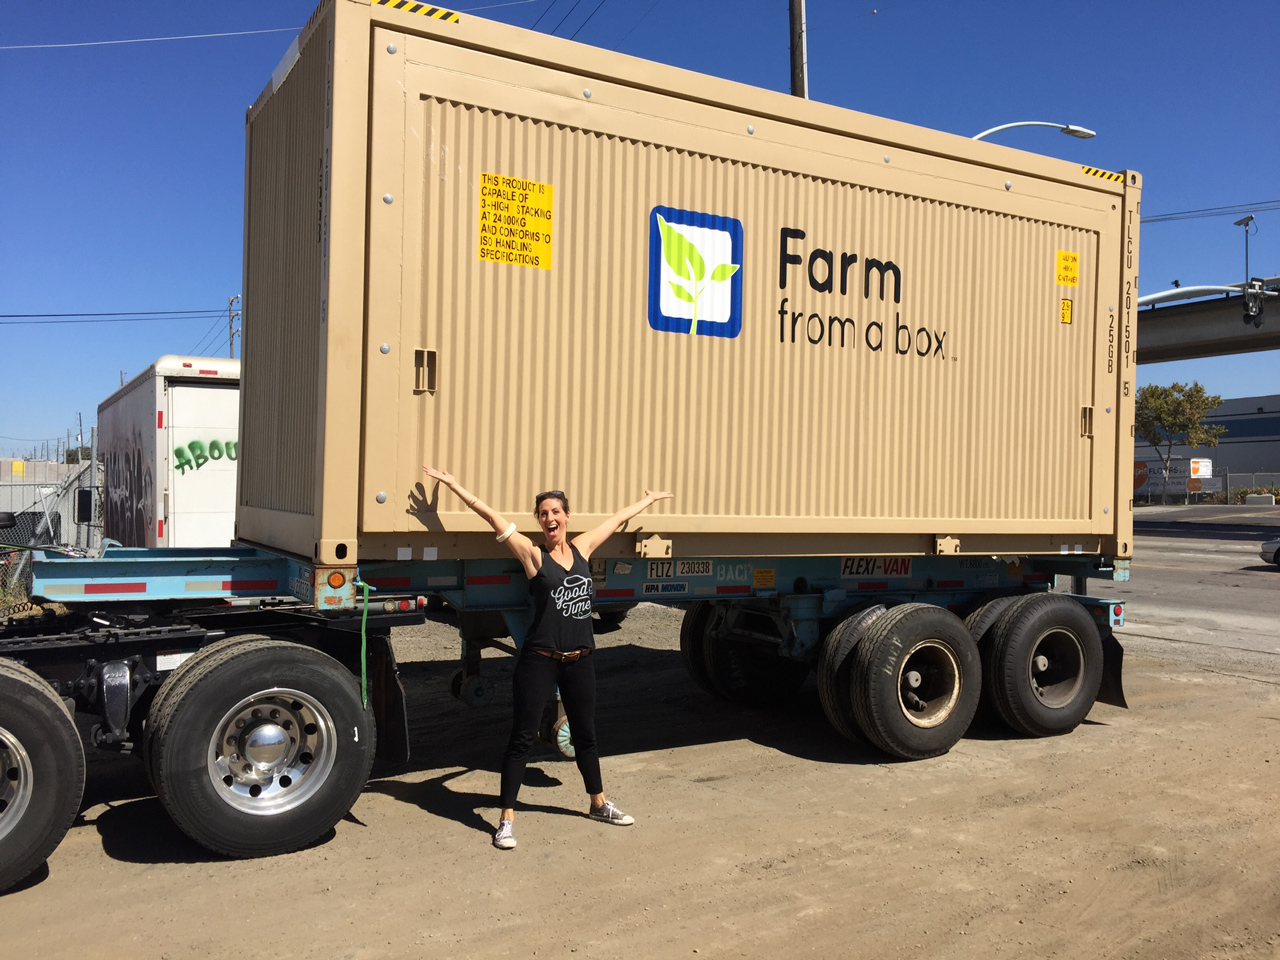 3053281-inline-s-3-this-all-in-one-box-brings-modern-agriculture-to-small-farms-and-refugee-camps.jpg